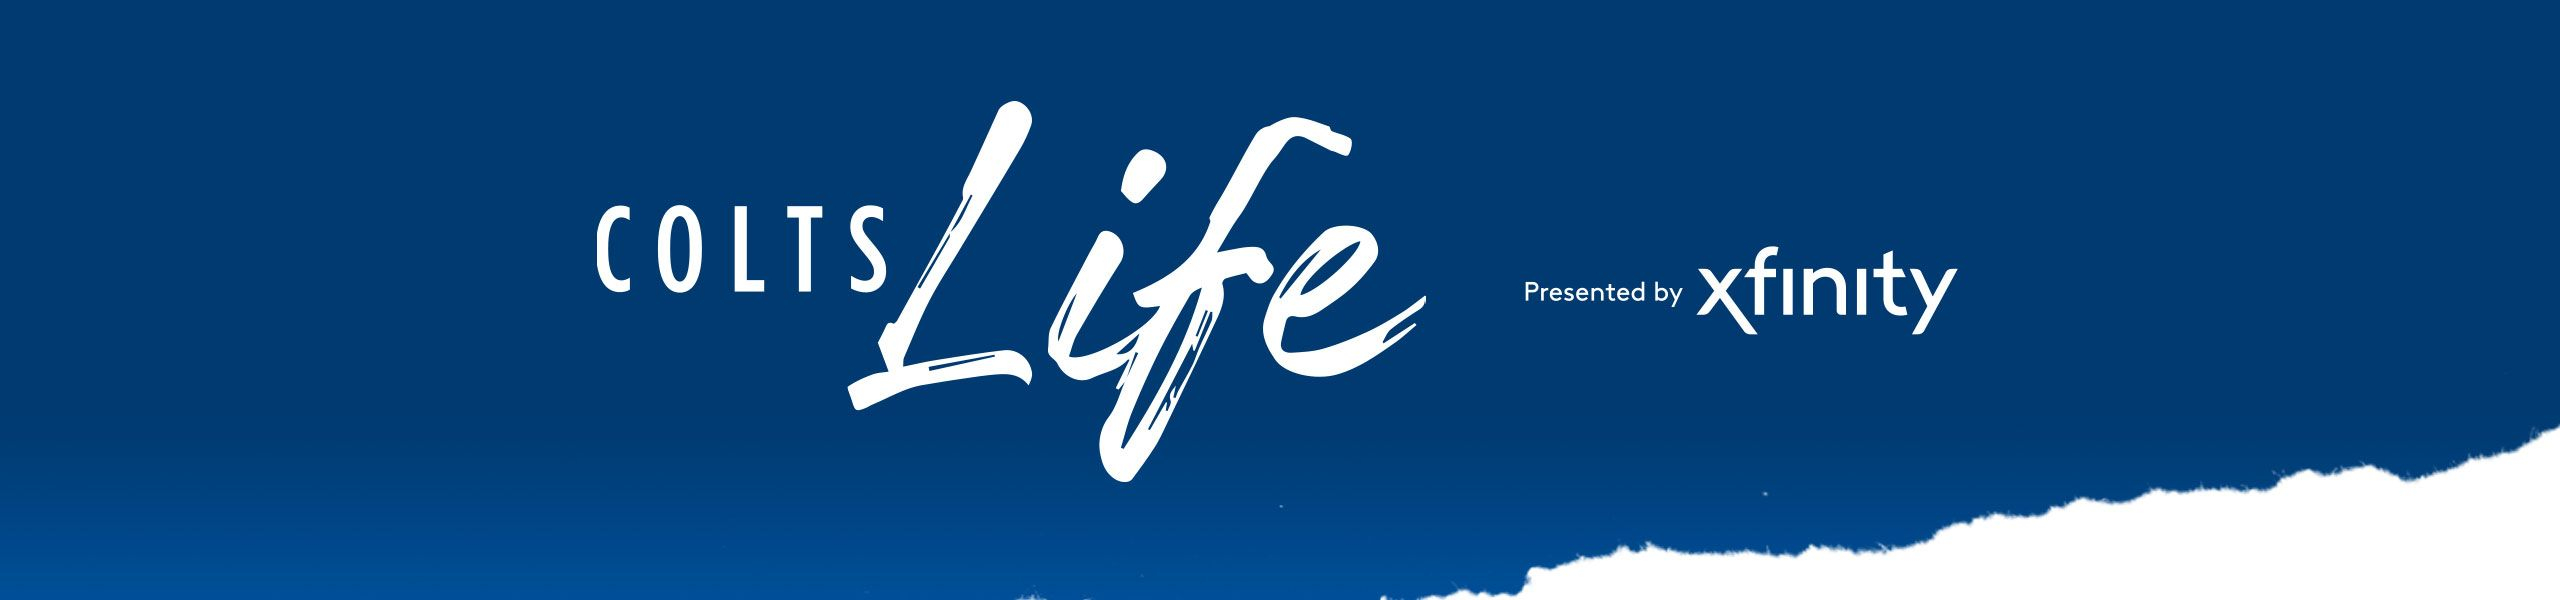 Colts Life Presented By Xfinity